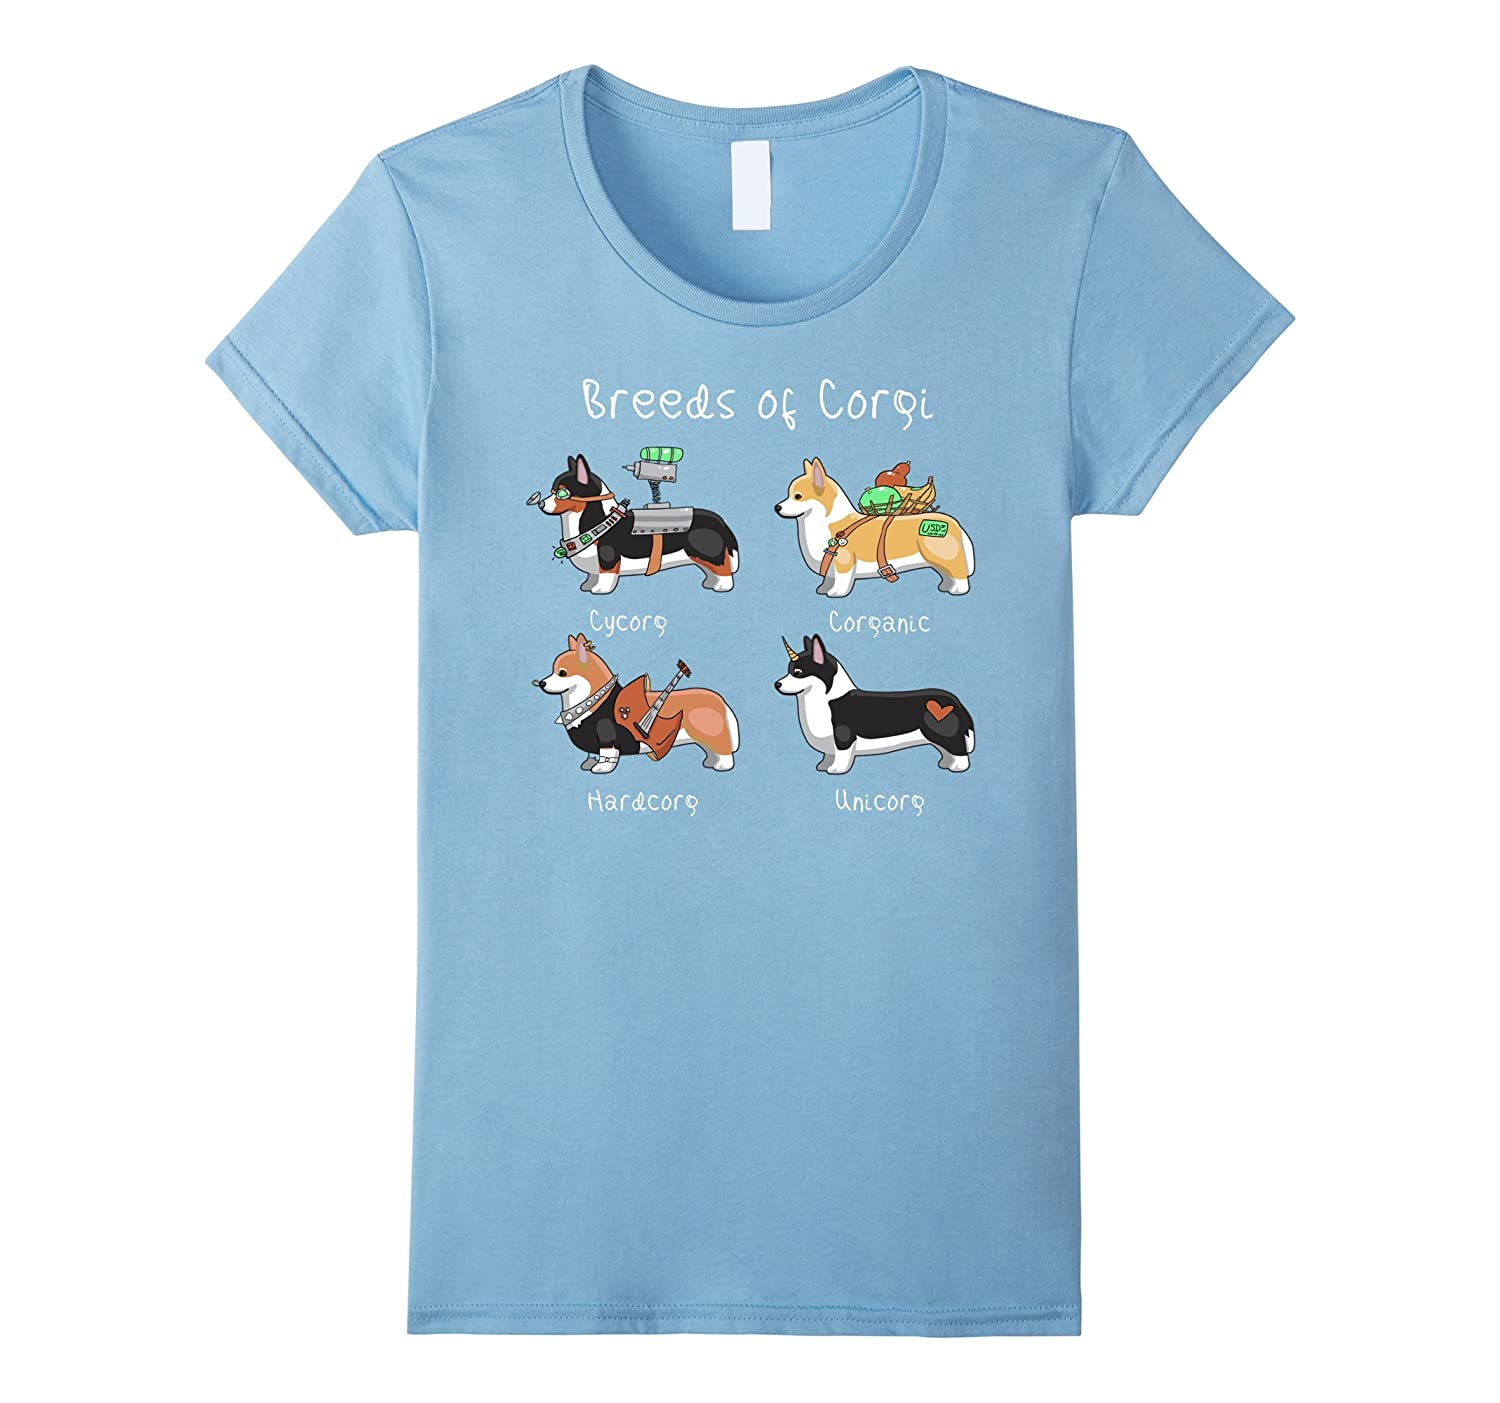 Breeds of Corgi Cycorg Corganic Hardcorg Unicorg T Shirt-Colonhue